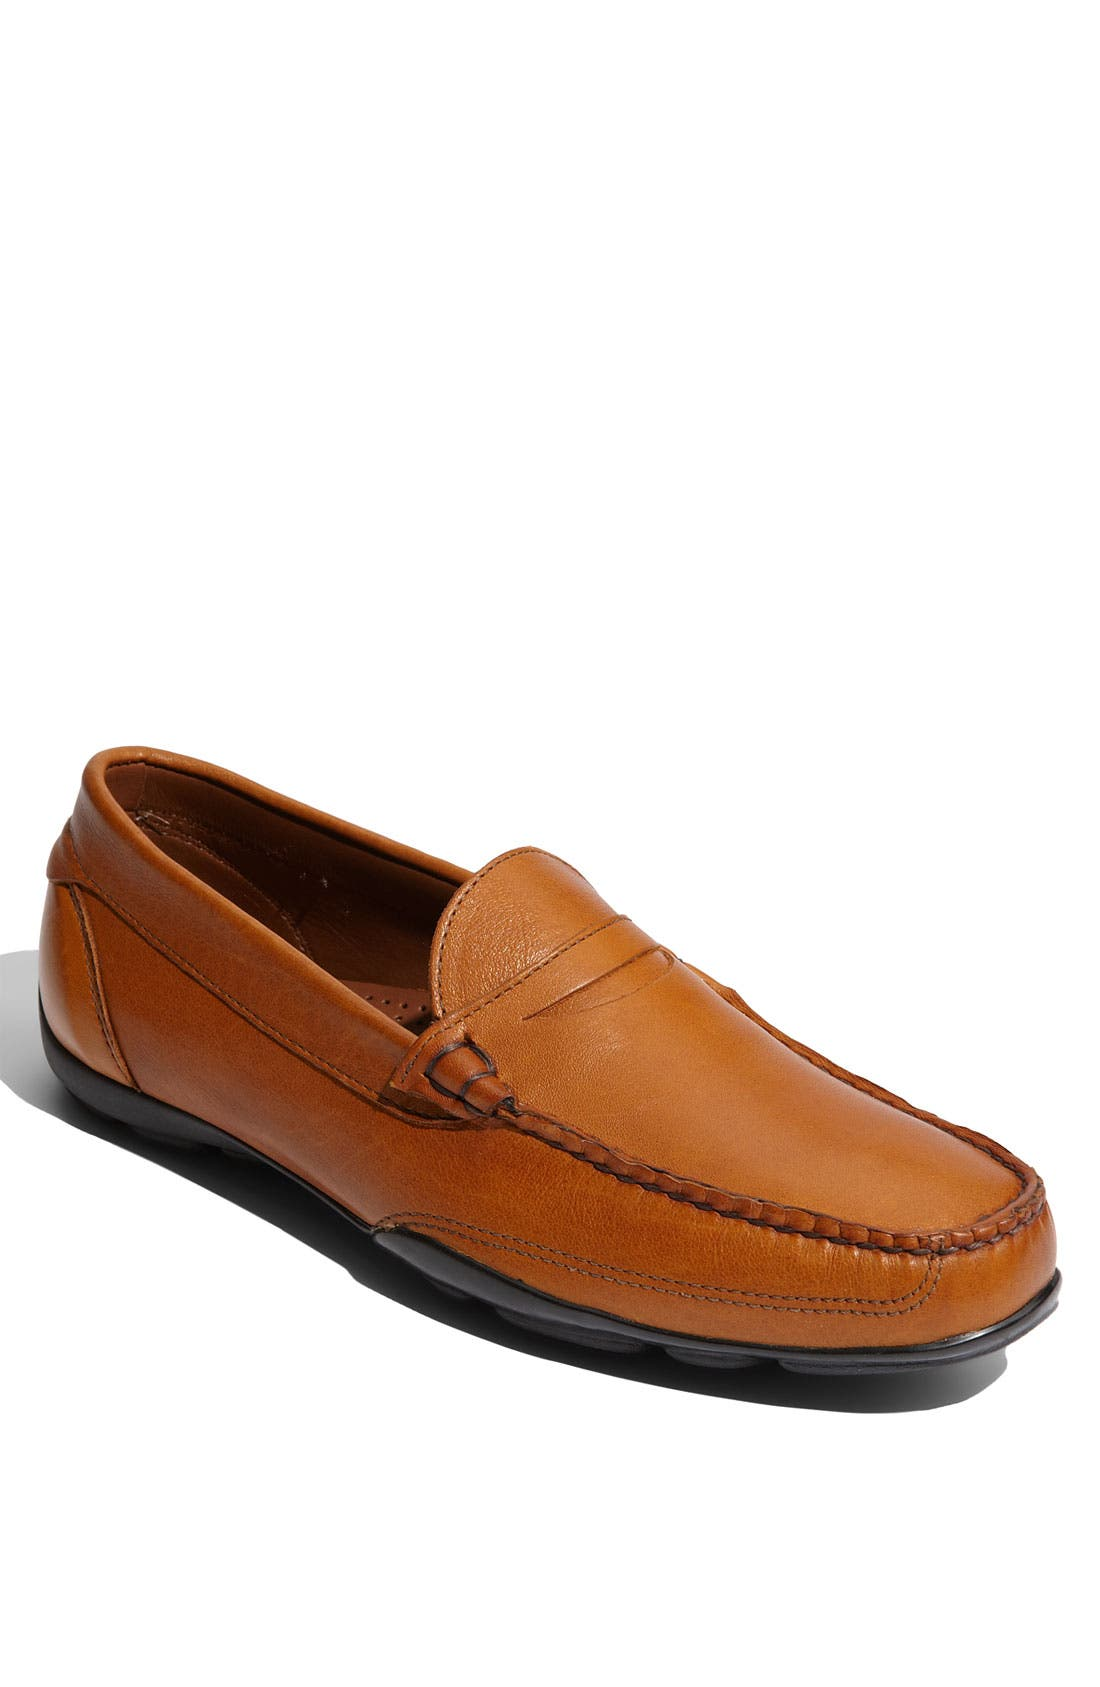 Main Image - ALLEN EDMONDS ROUTE 100 PENNY LOAFER